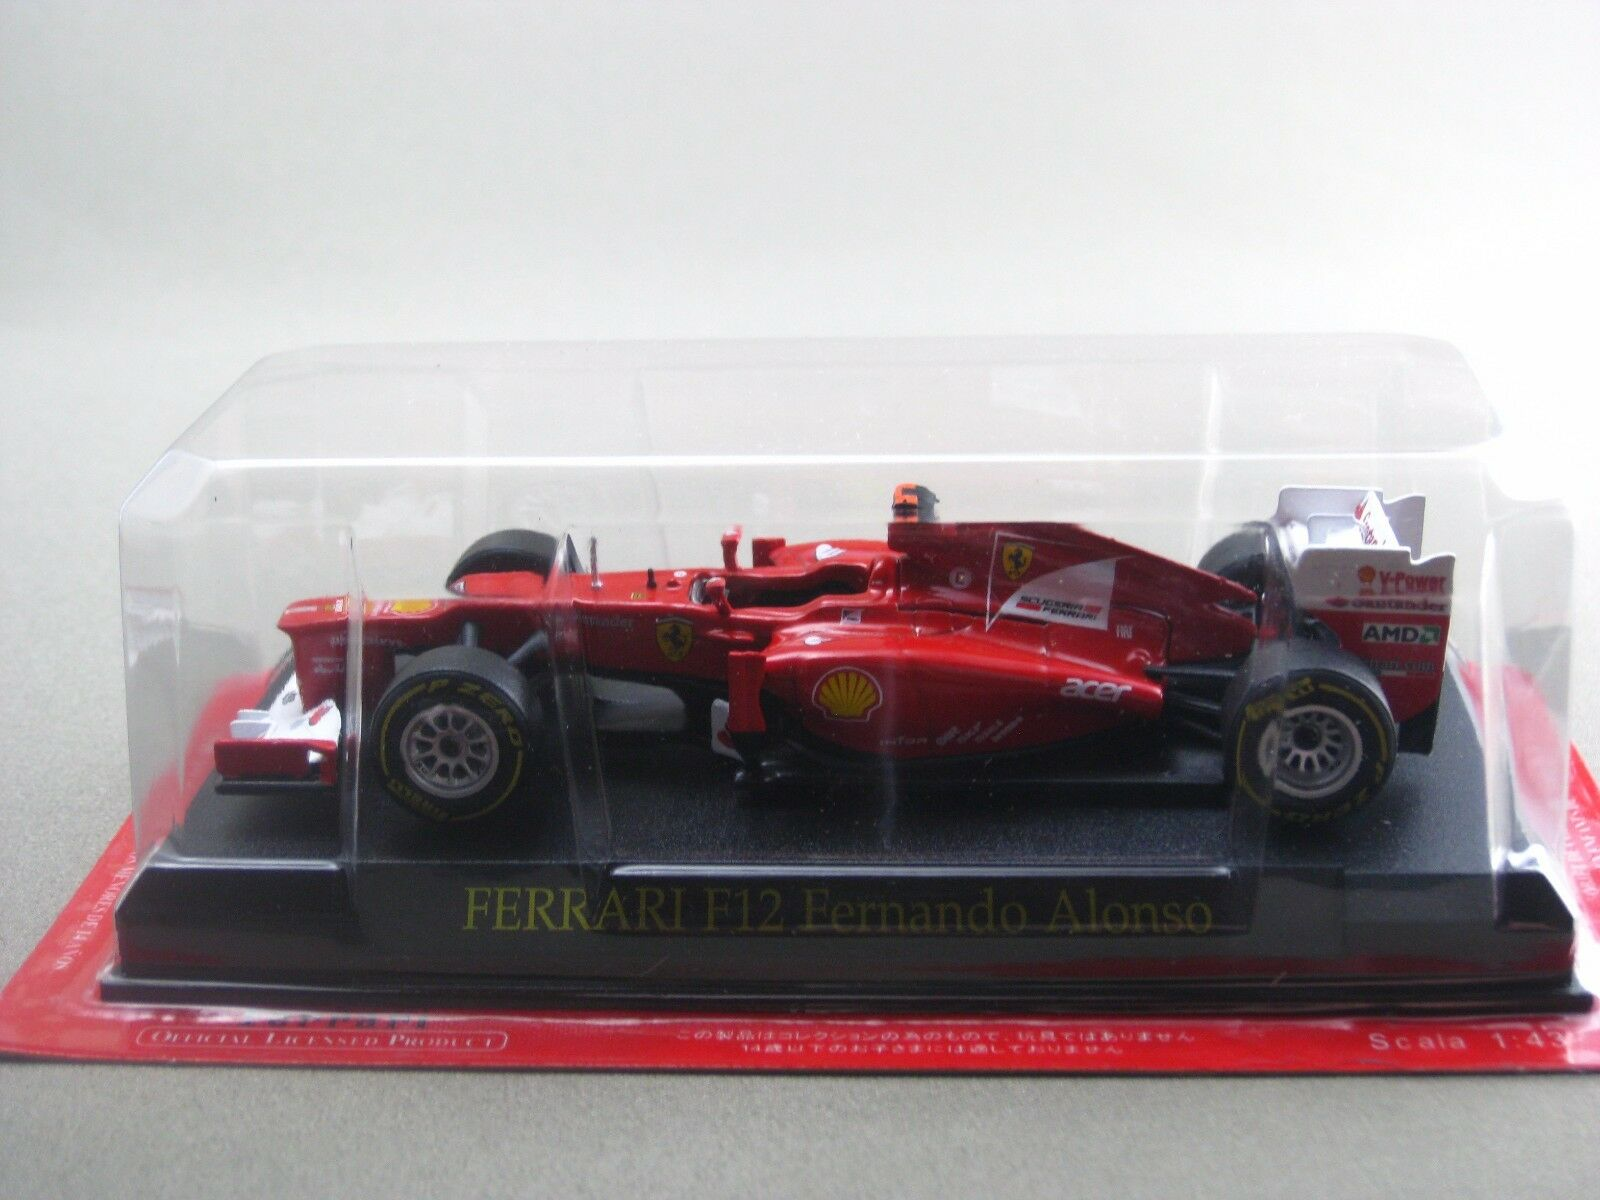 Ferrari F2012 FERNANDO ALONSO 2012 hachette 1 43 Diecast Model car Vol.78